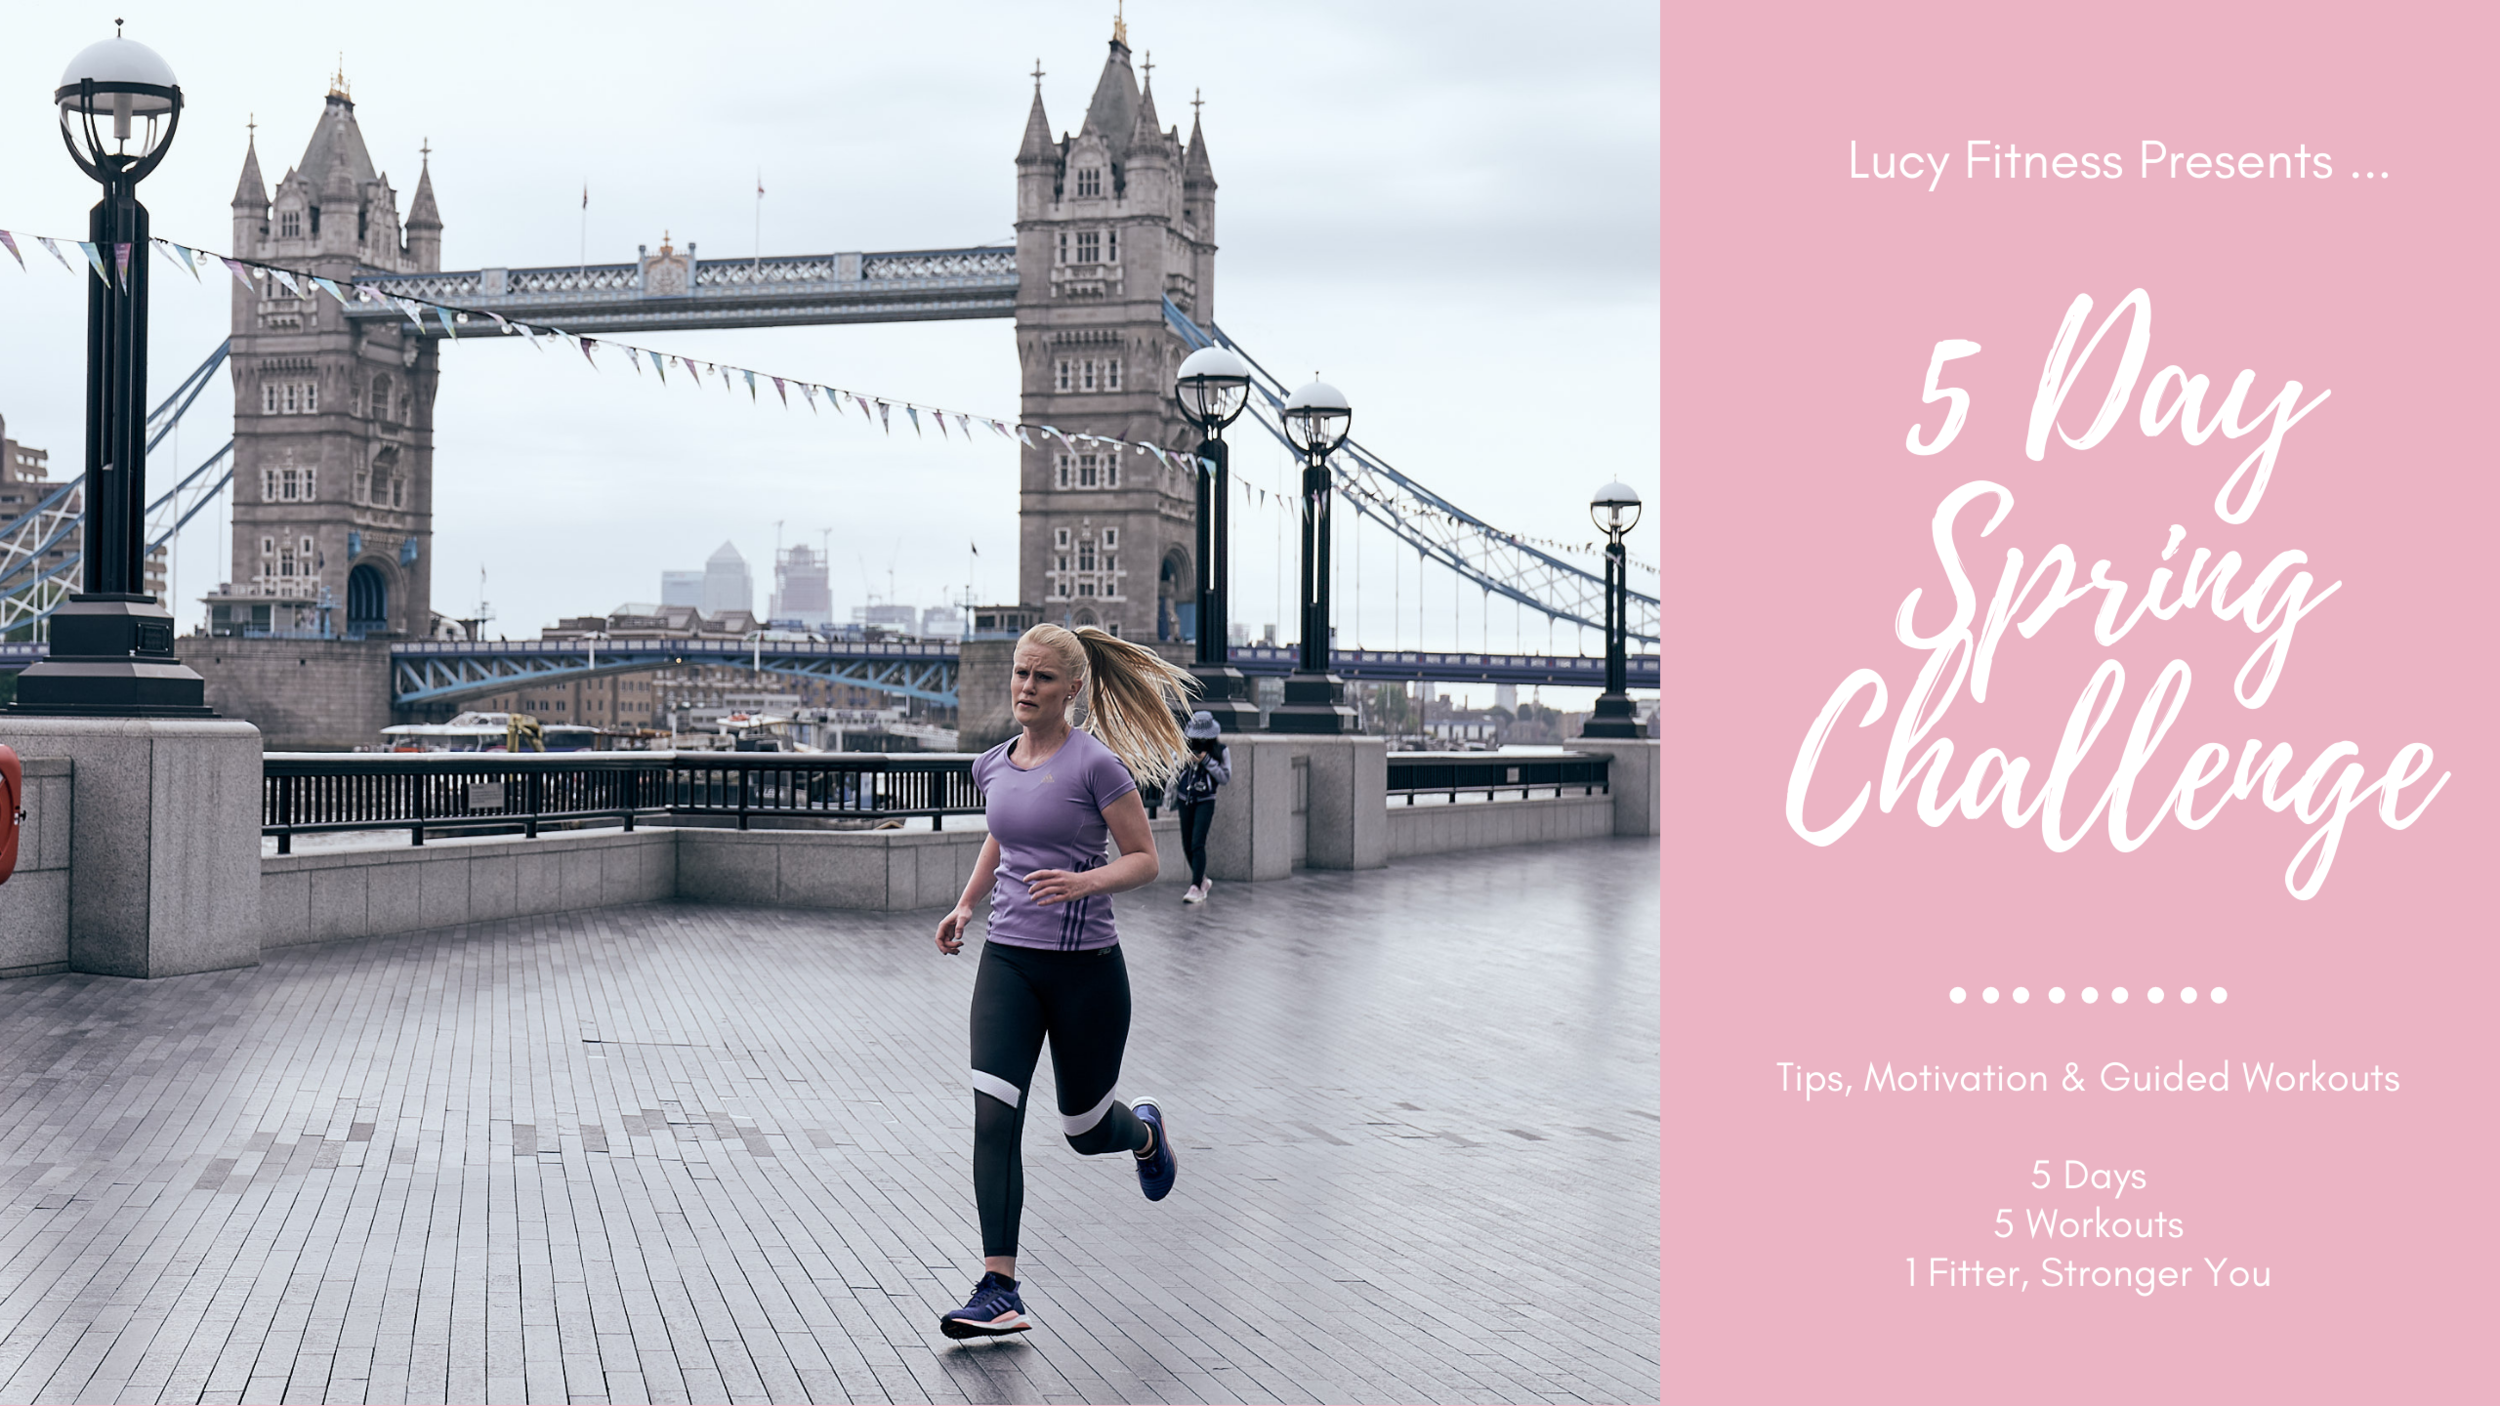 It's hard to get started with exercise but this challenge will guide you and motivate you to do just that